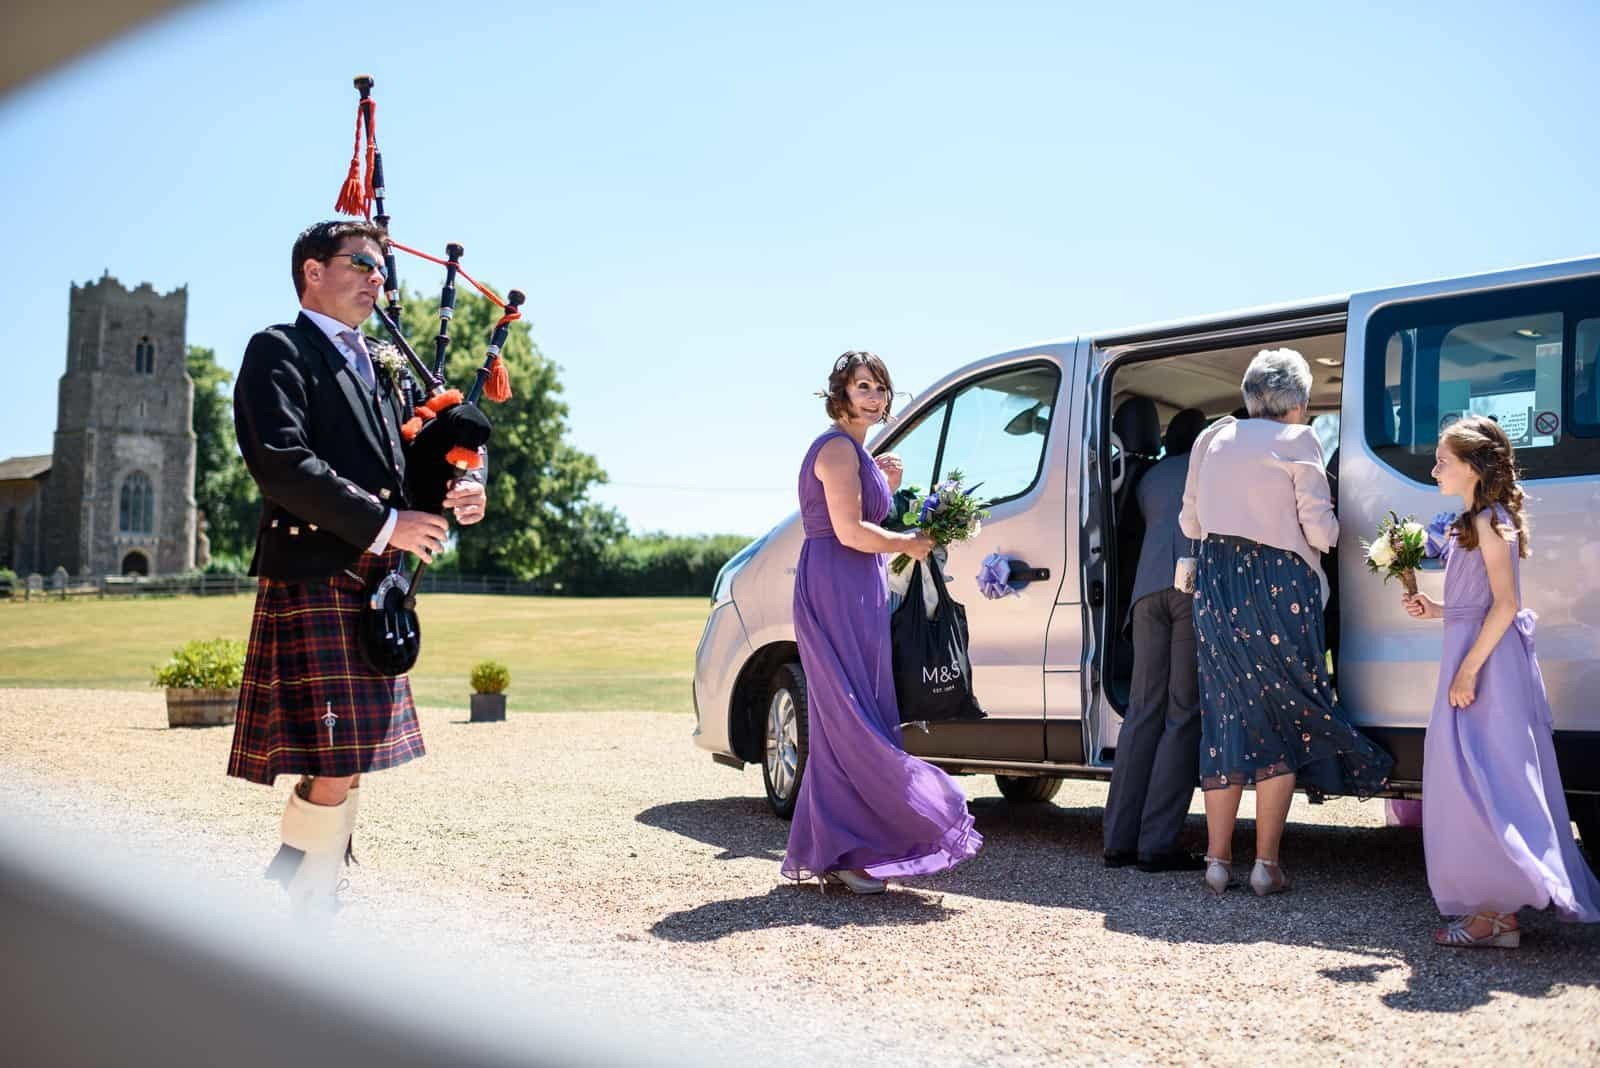 Copdock Hall-Sammy and Suzanne Wedding with bagpiper